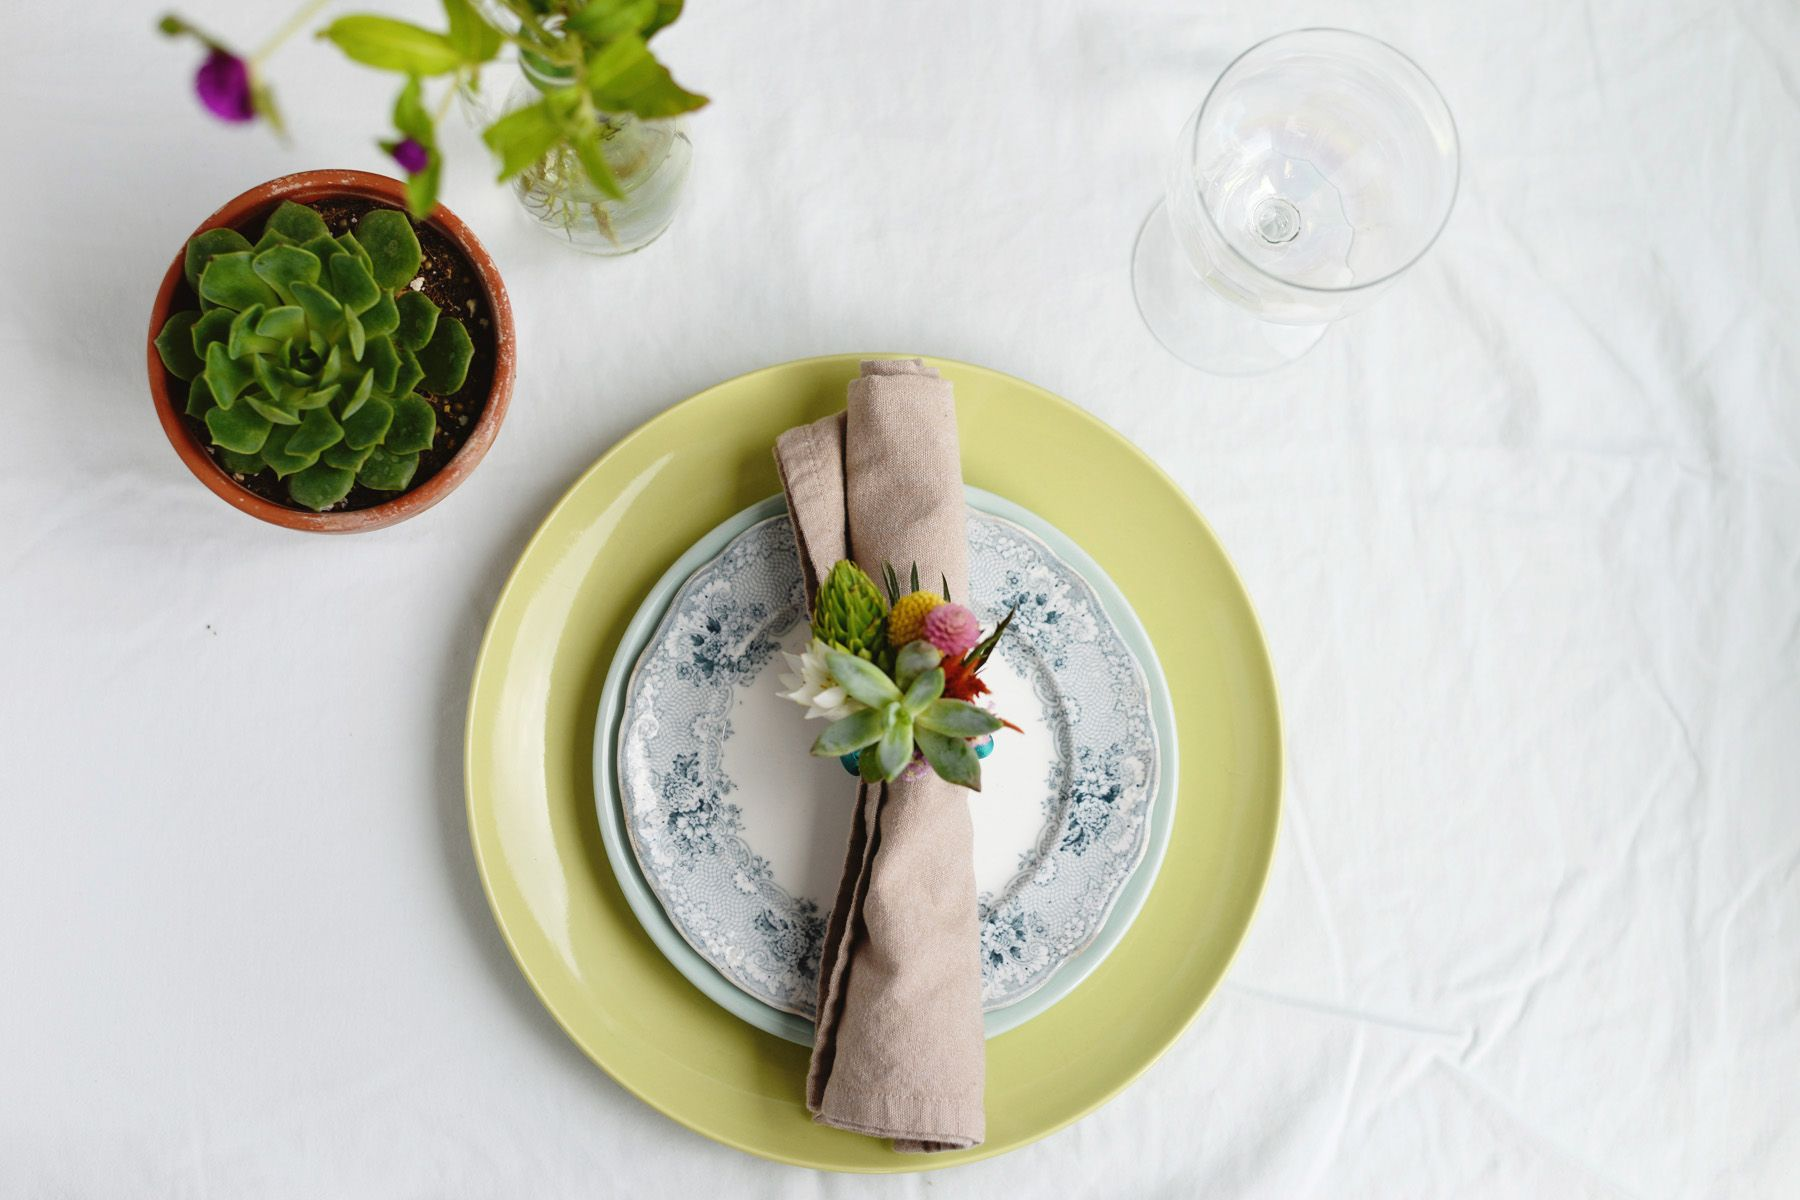 DIY Floral Napkin Rings on Plate